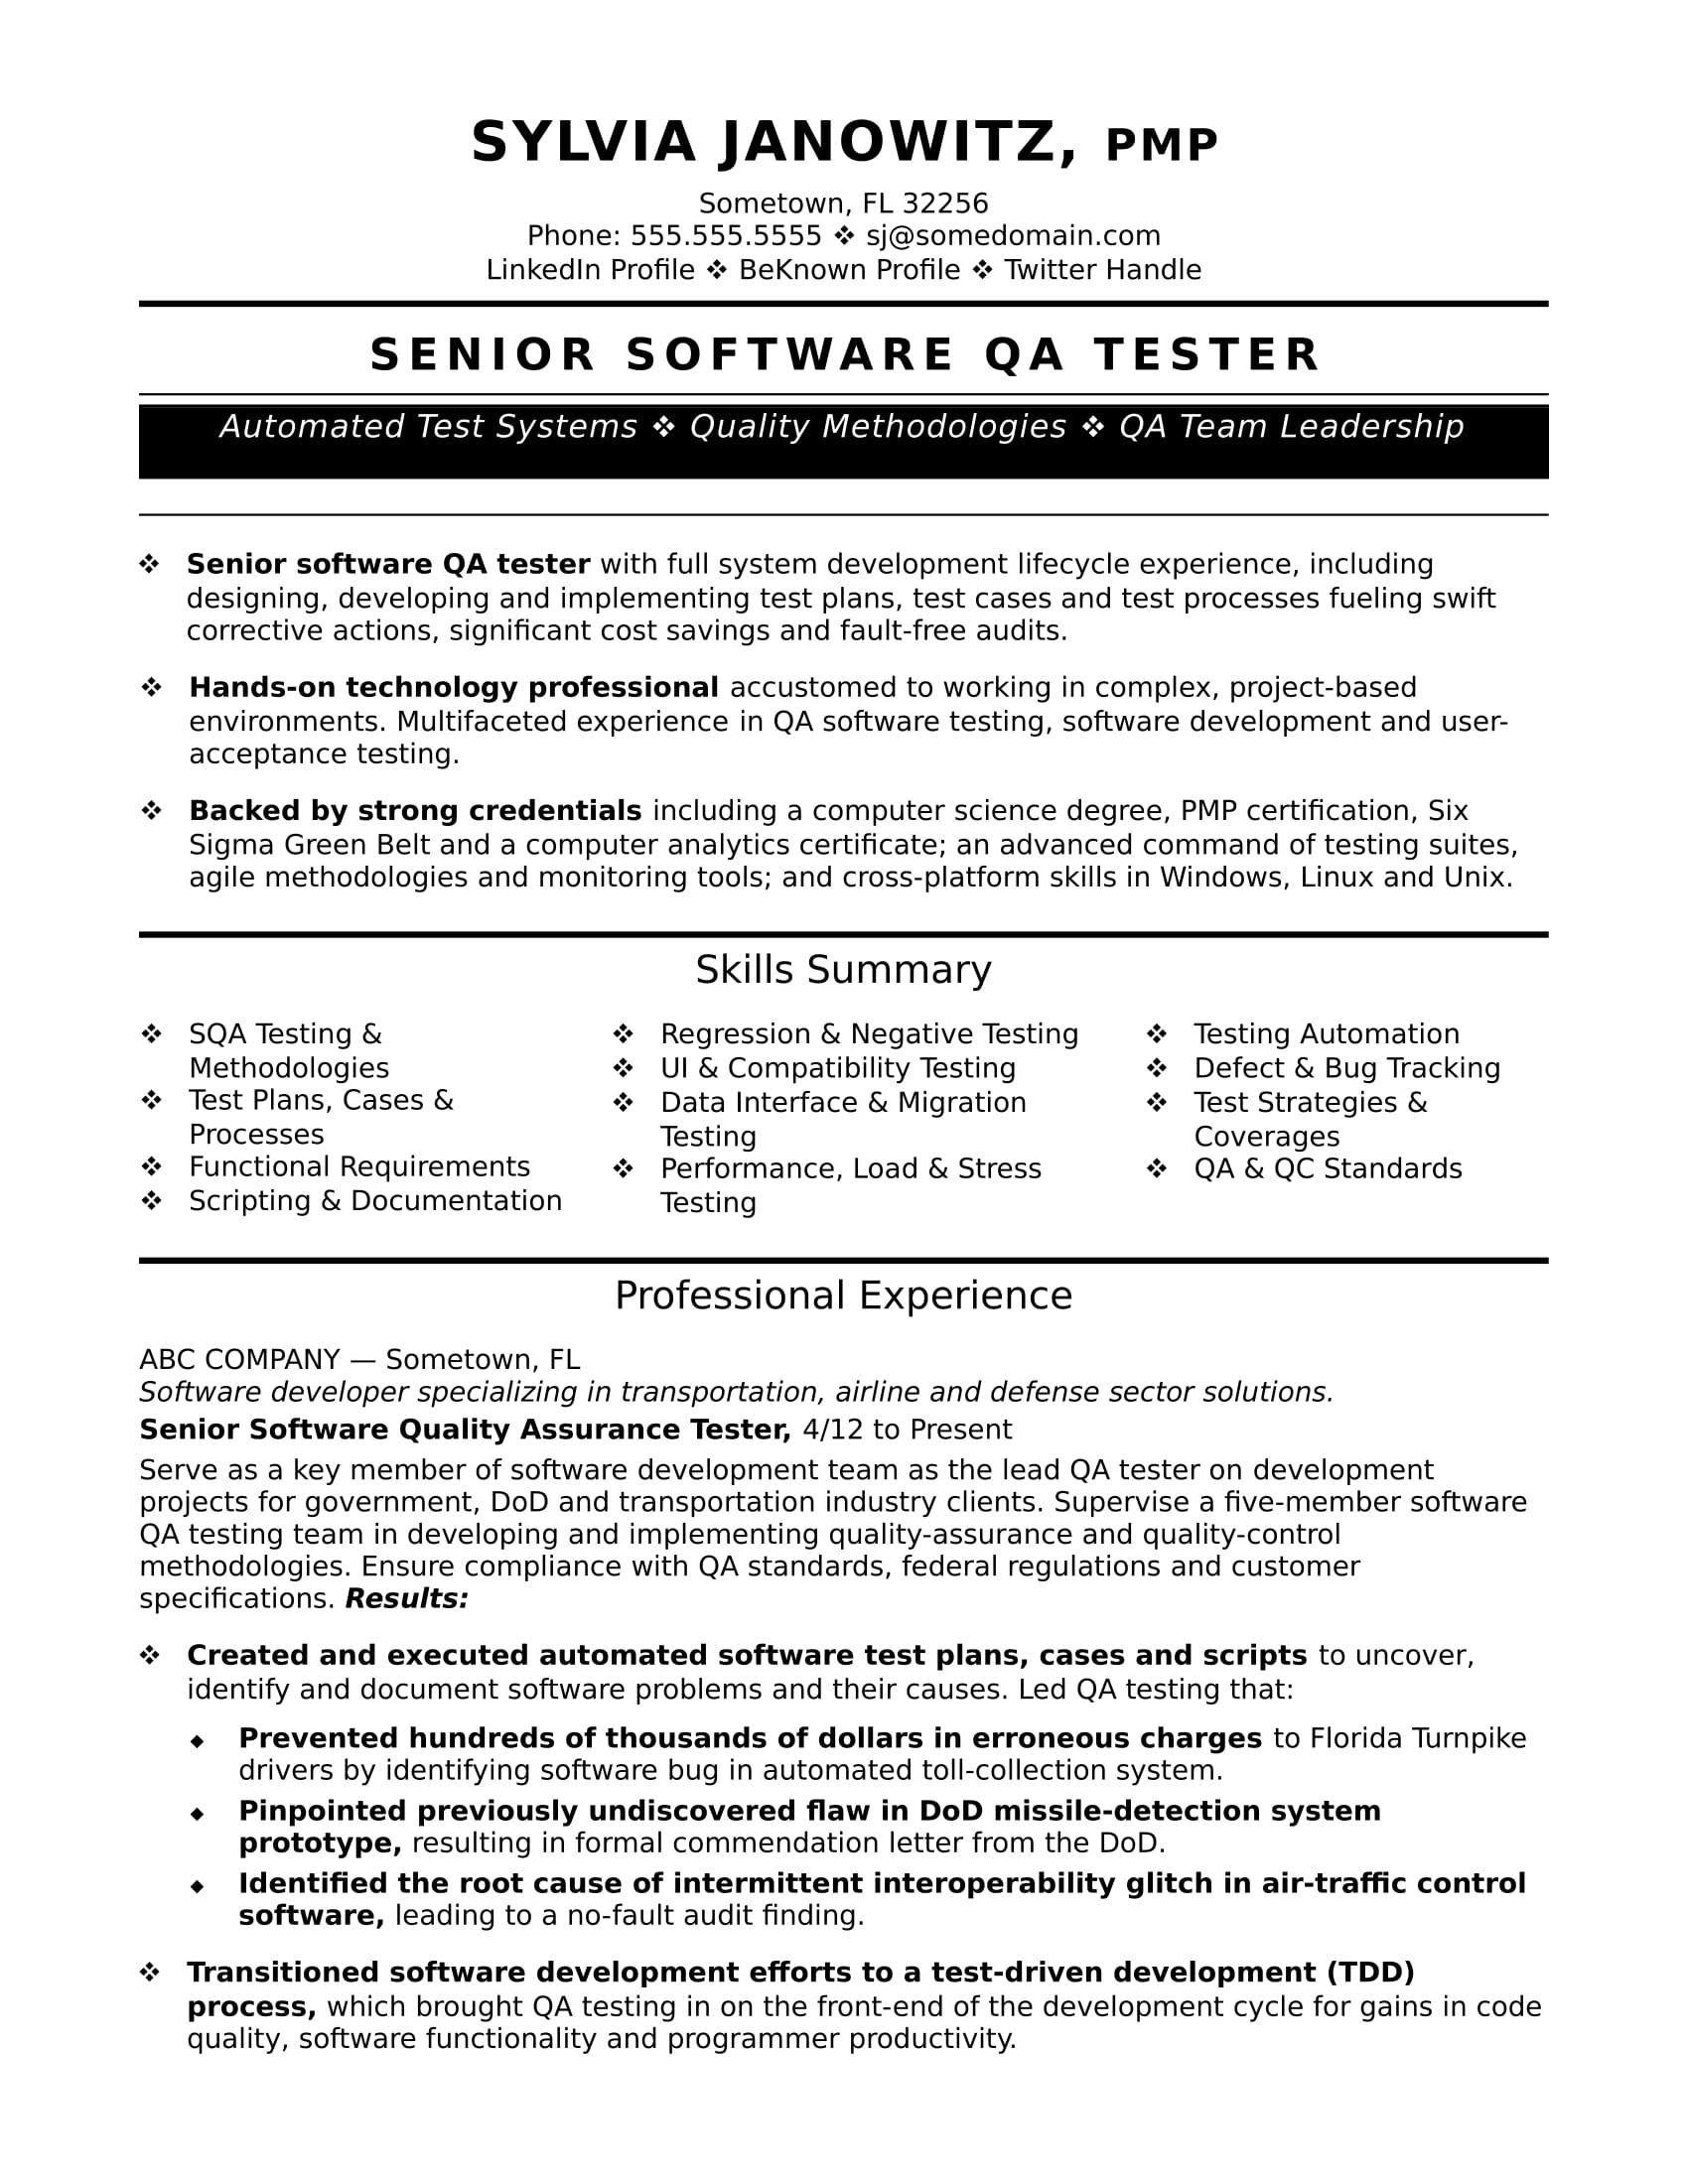 experienced qa software tester resume sample monster soapui testing points format samples Resume Soapui Testing Resume Points